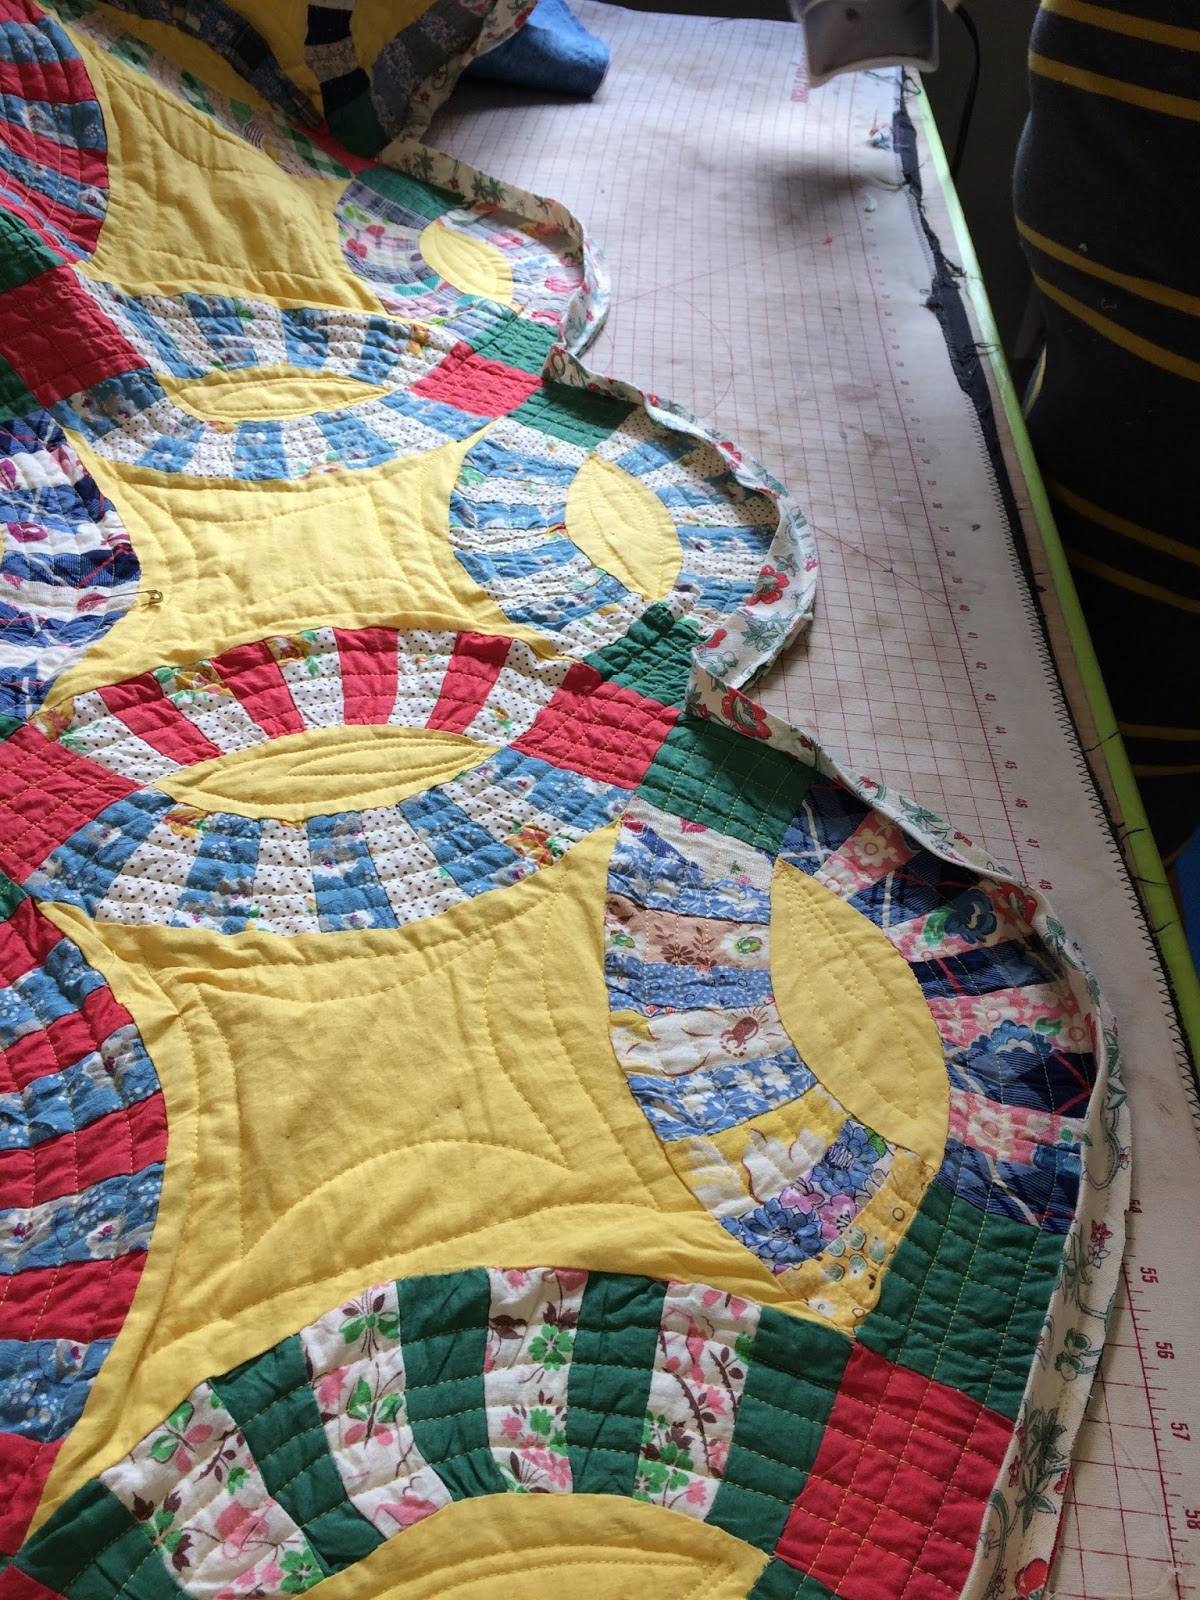 Patty Quot The Quilt Lady Quot Binding A Wedding Ring Quilt And